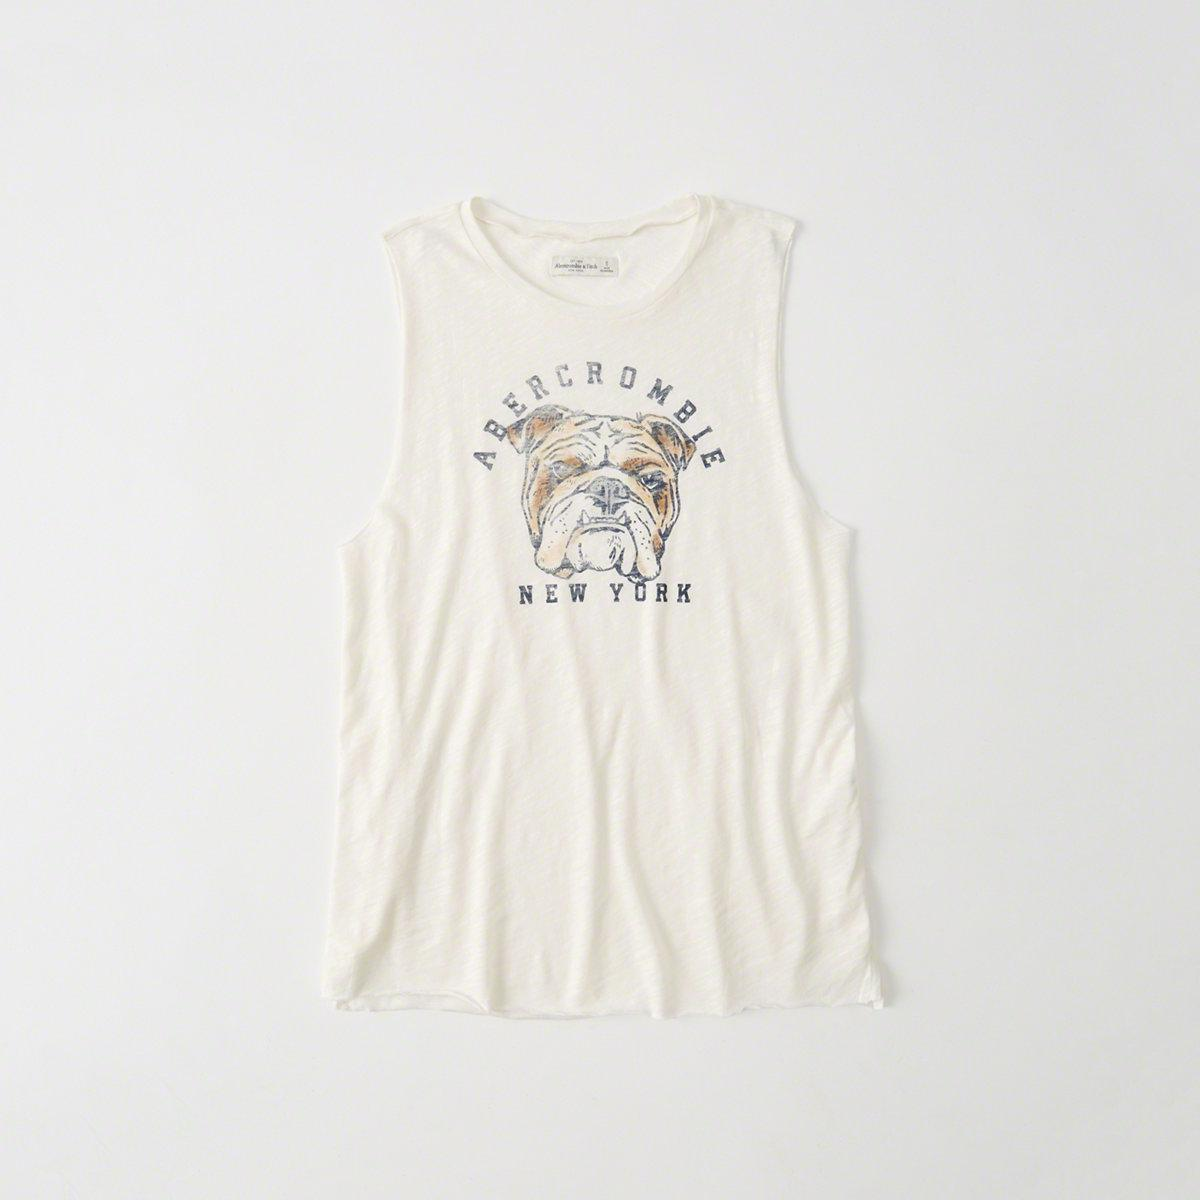 6f1fd37c Lyst - Abercrombie & Fitch Graphic Muscle Tank in White for Men